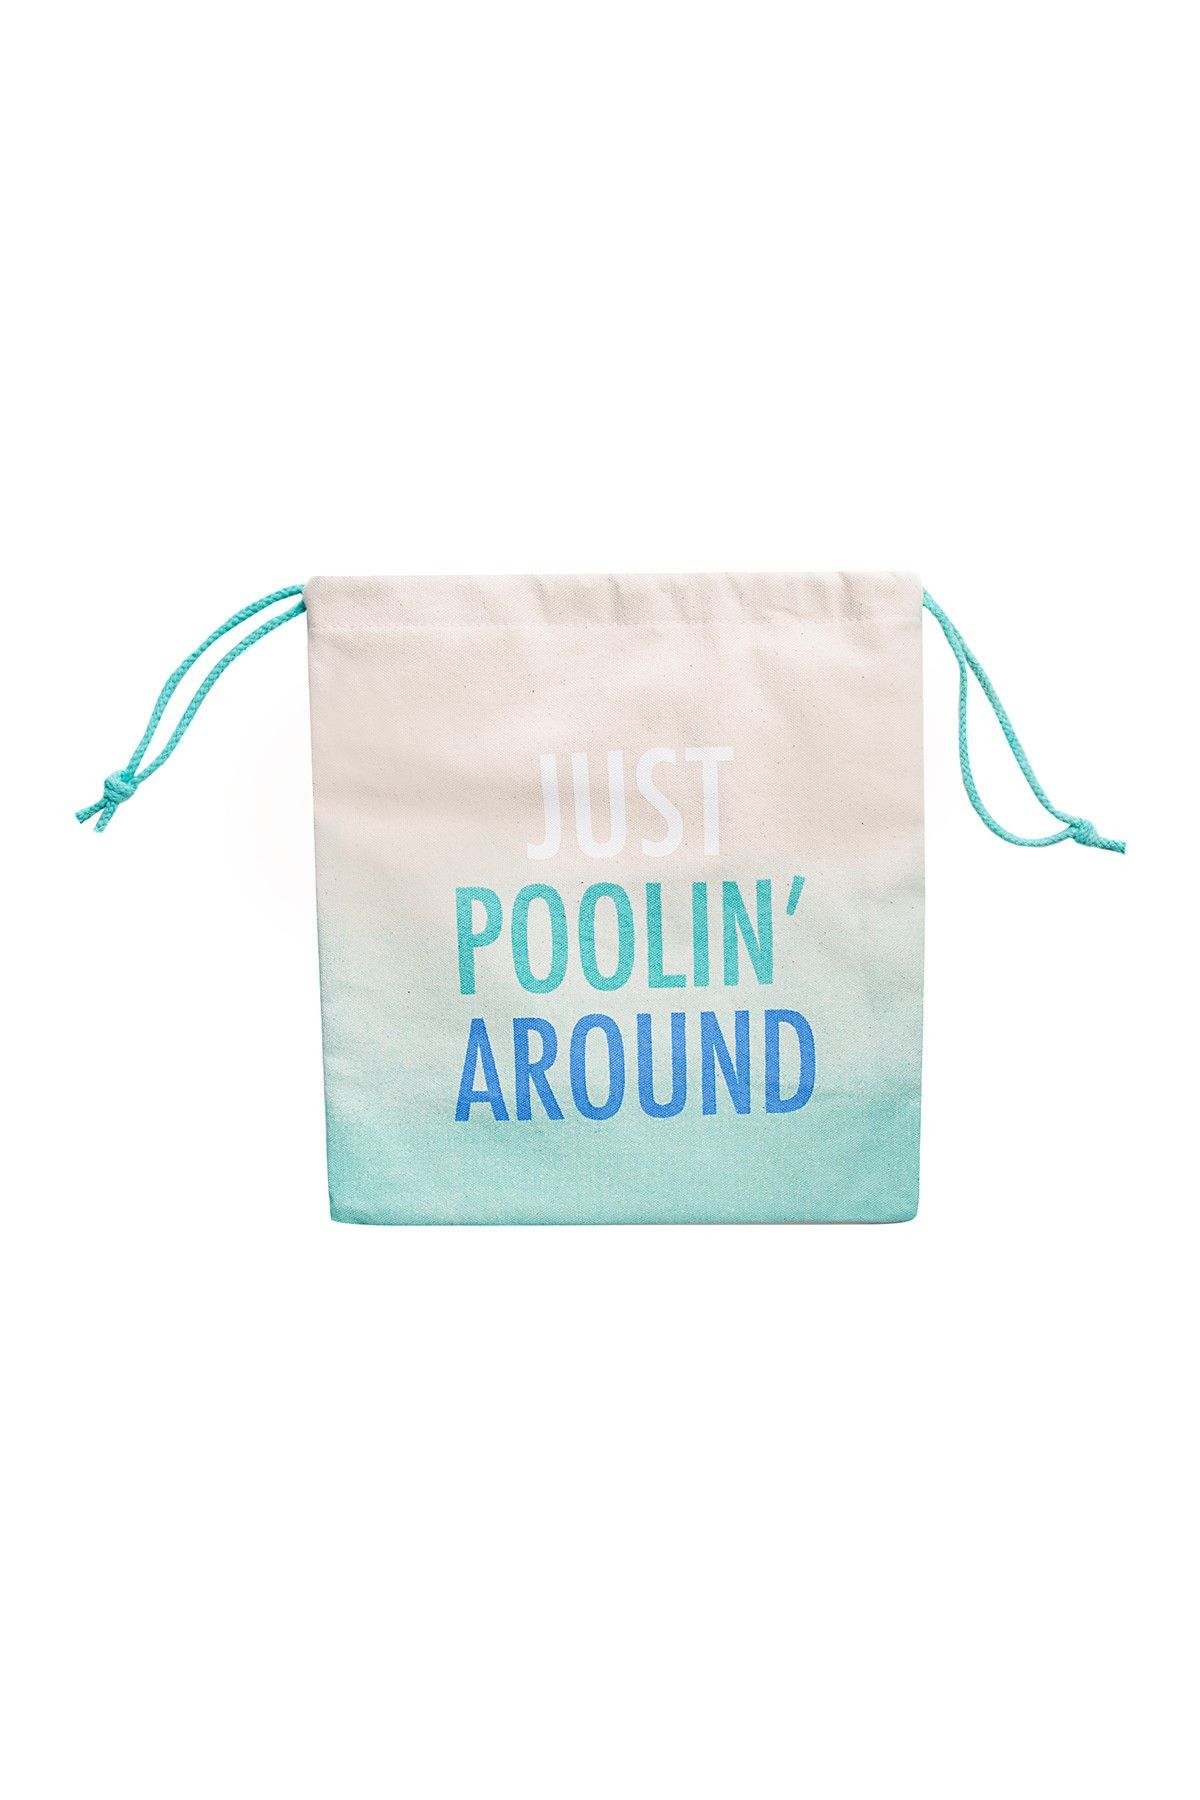 Slant Designs Poolin Around Bathing Suit Bag In 2020 Bags